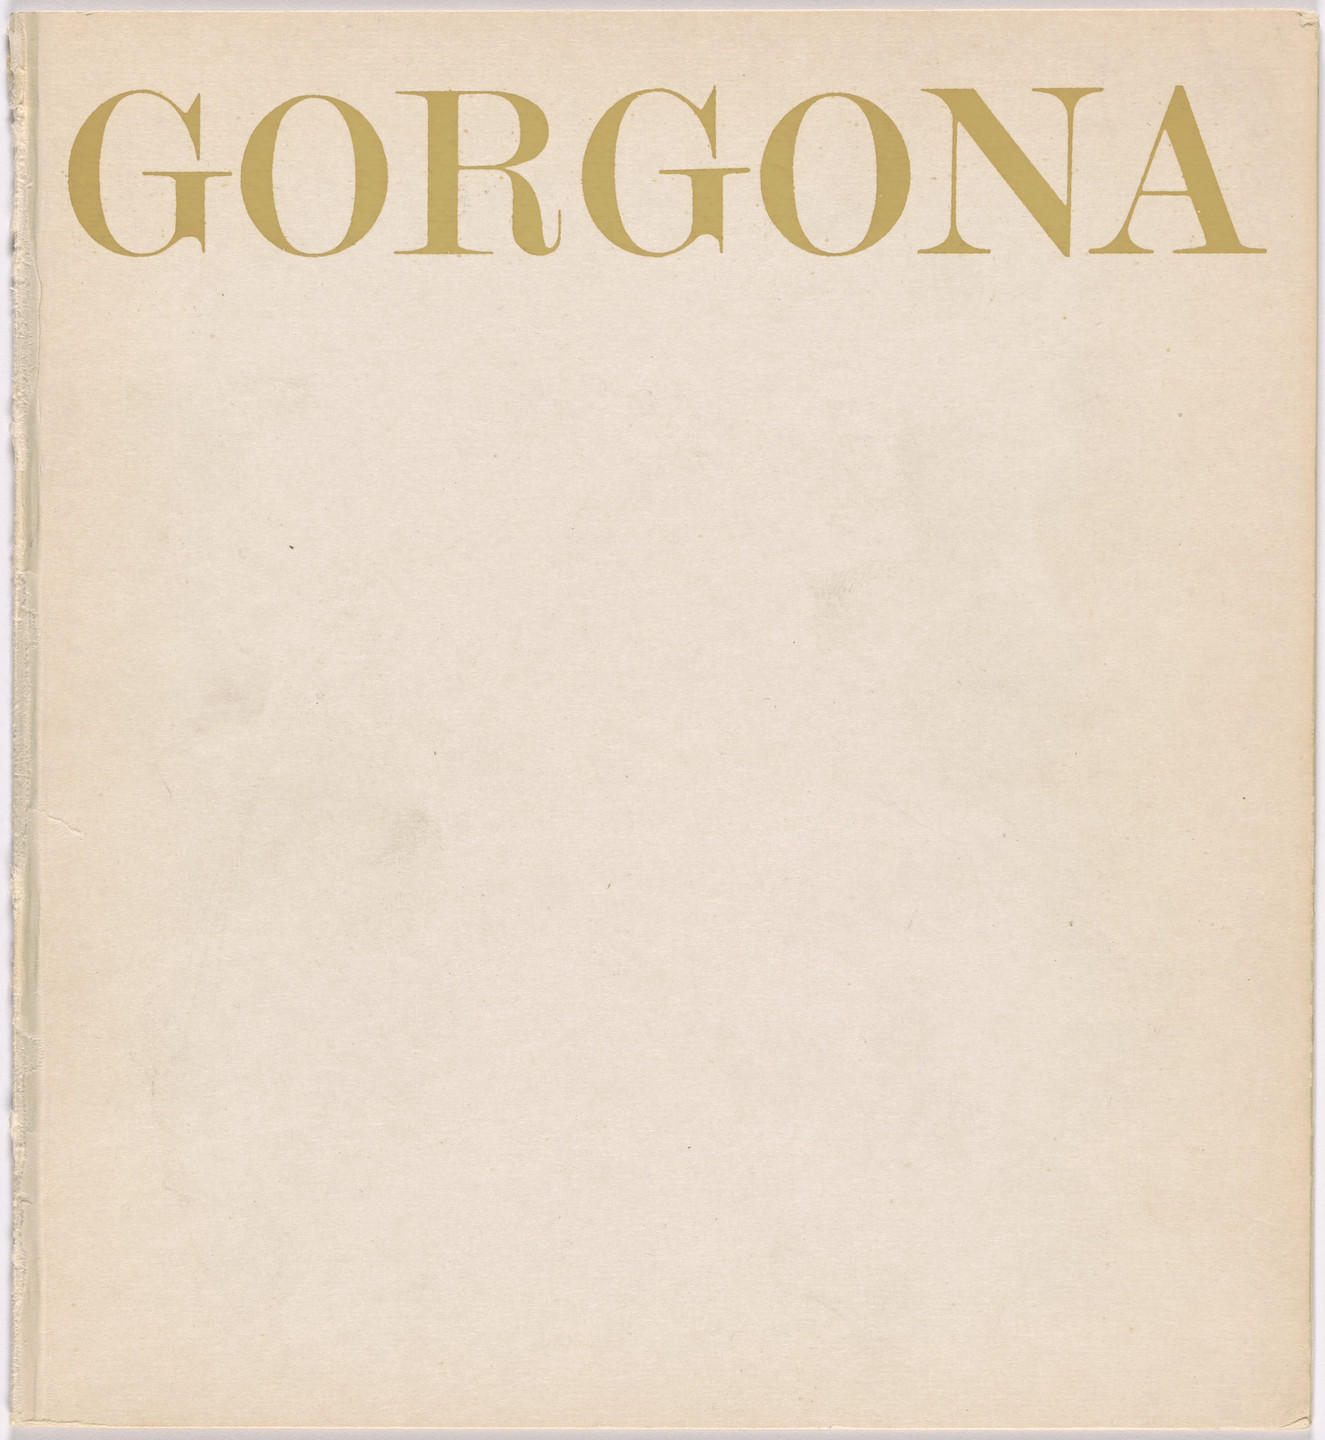 Gorgona artists group. Gorgona n. 8. 1965